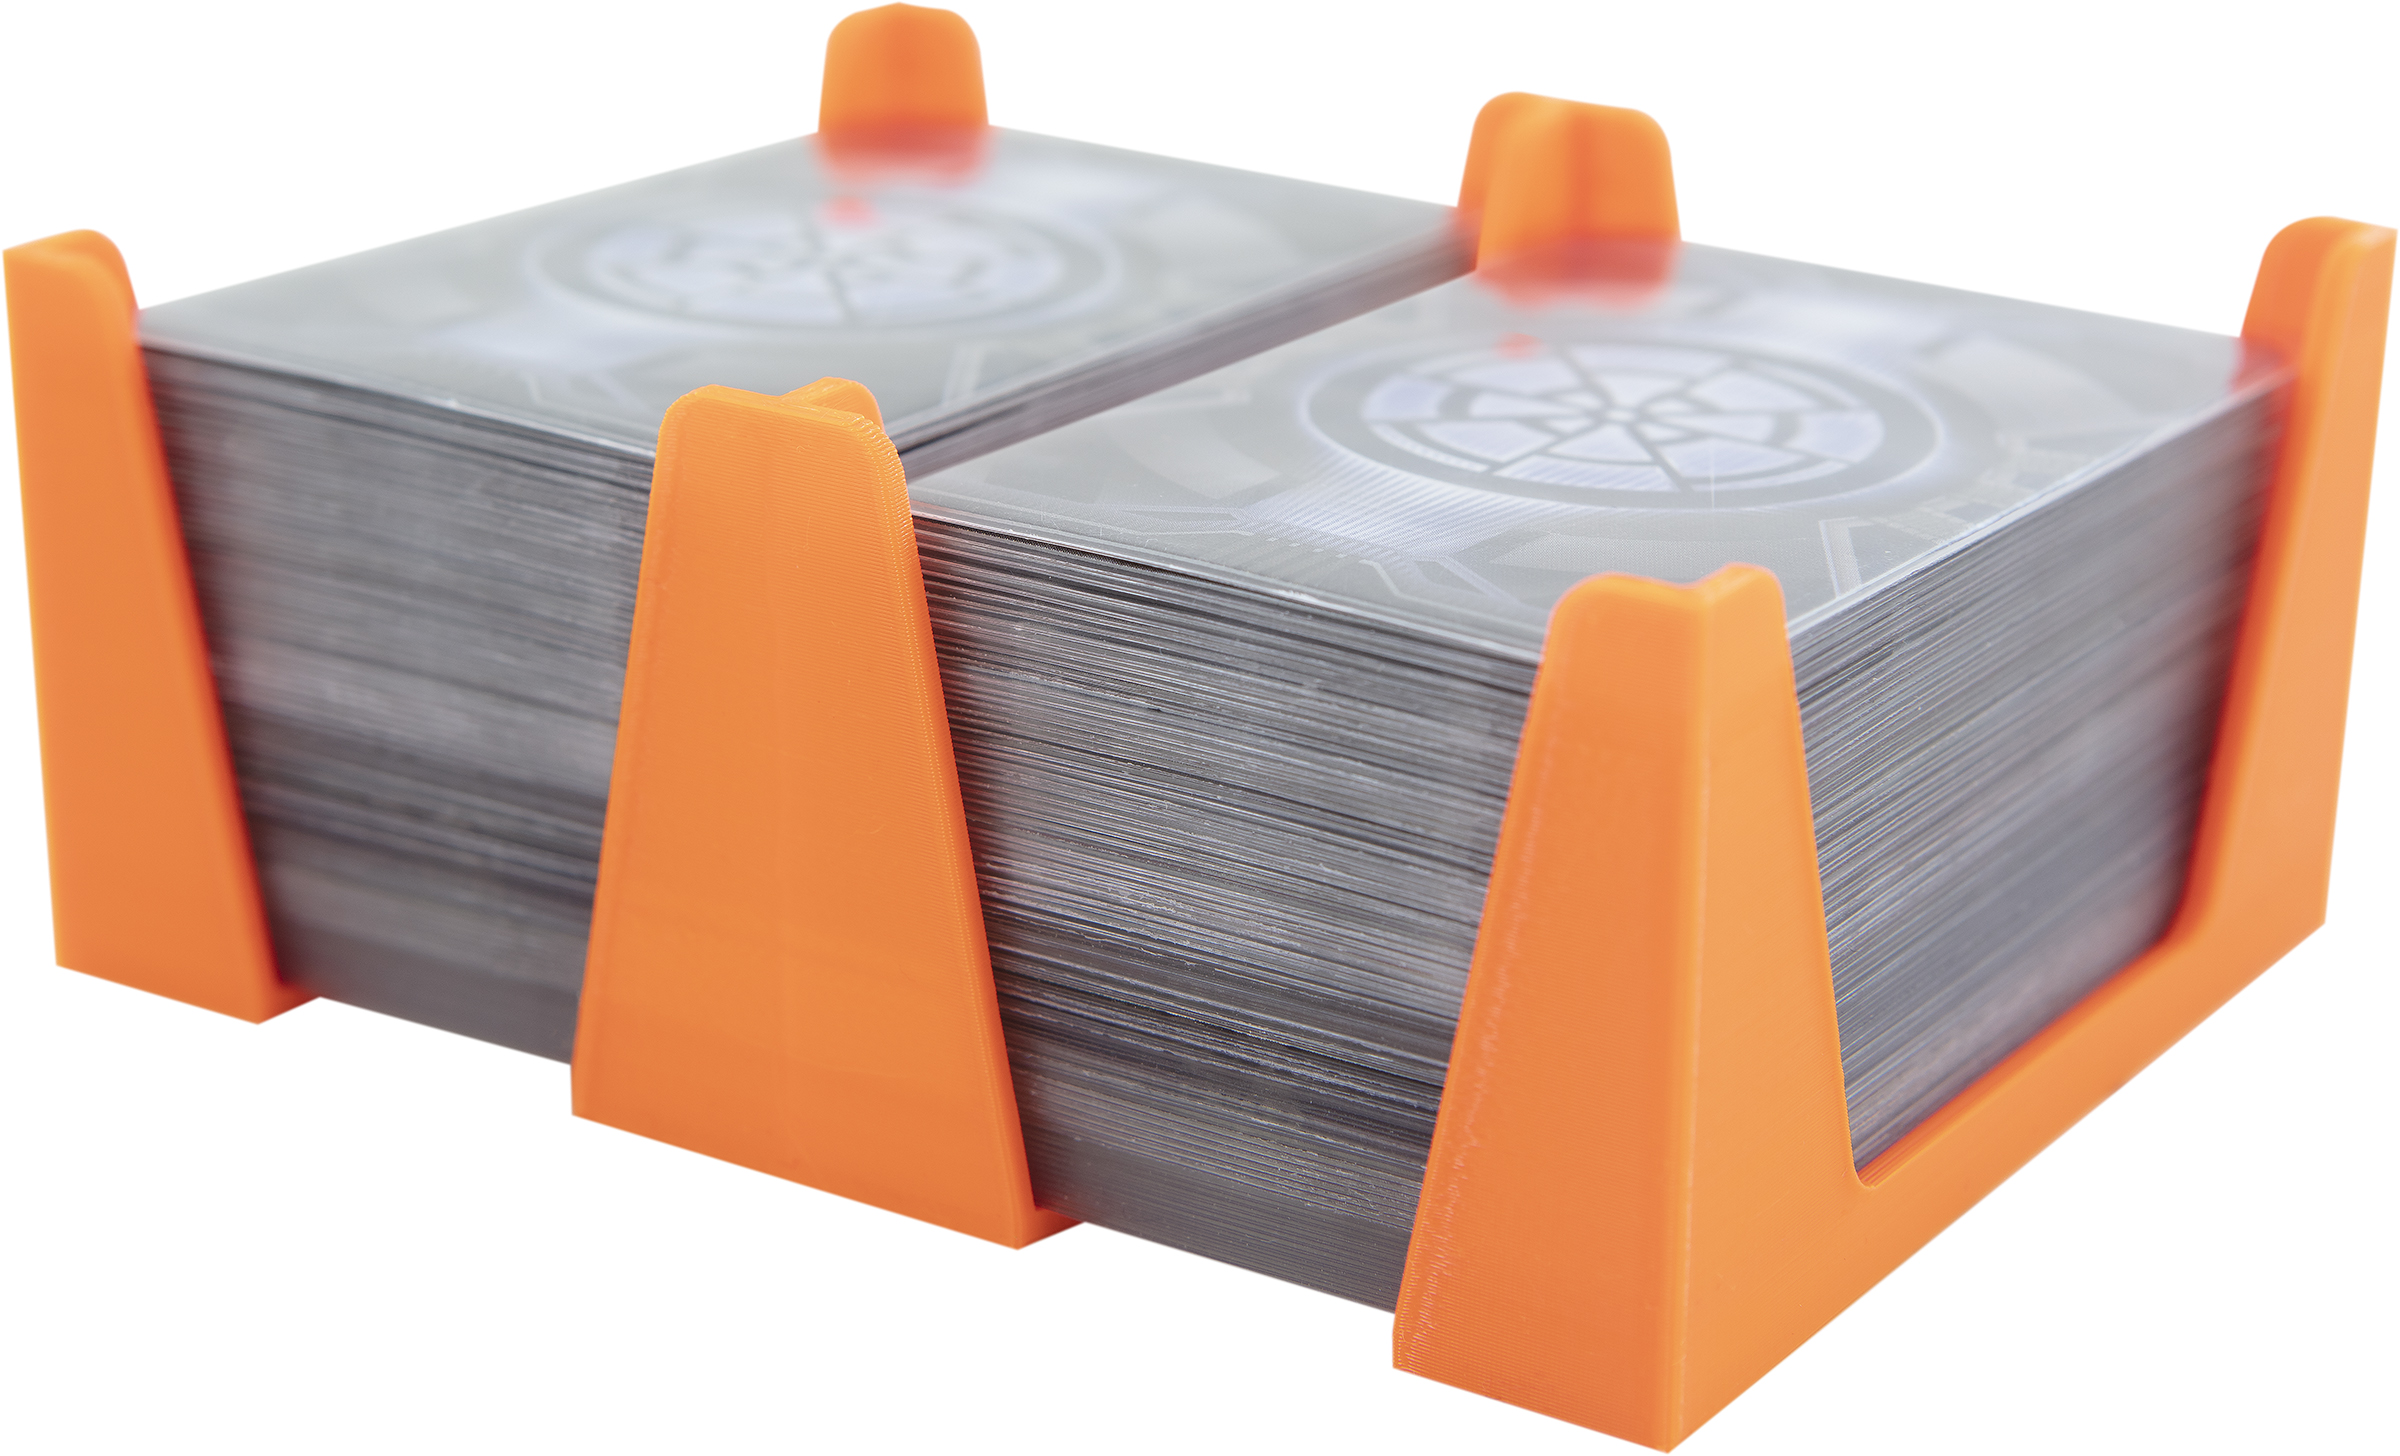 Feldherr Card Holder for game cards in Standard American Board Game Size - 300 cards - 2 trays